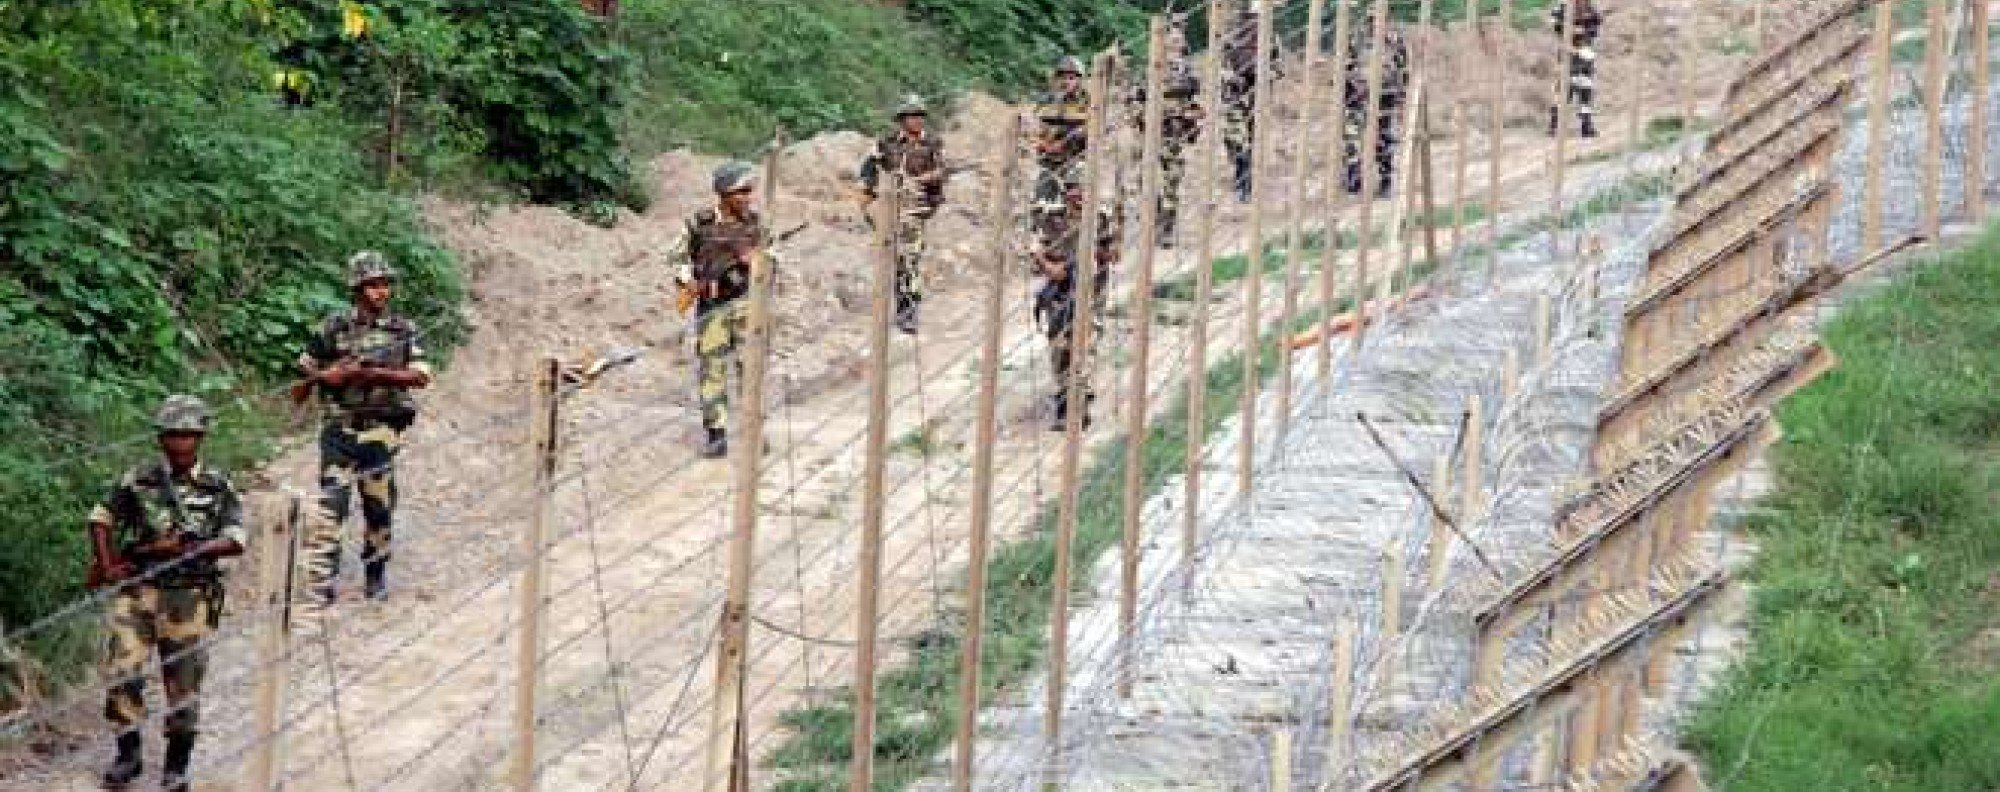 epa05557164 Indian Border Security Force (BSF) soldiers patrol near the fence at the India-Pakistan International Border at outpost Chenab of Dewali post of Akhnoor sector, about 60 km from Jammu the winter capital of Kashmir, India, 26 September 2016. BSF soldiers are on a high alert along the international border in Jammu, following heightened tensions between India and Pakistan after the Uri terror attack. EPA/JAIPAL SINGH